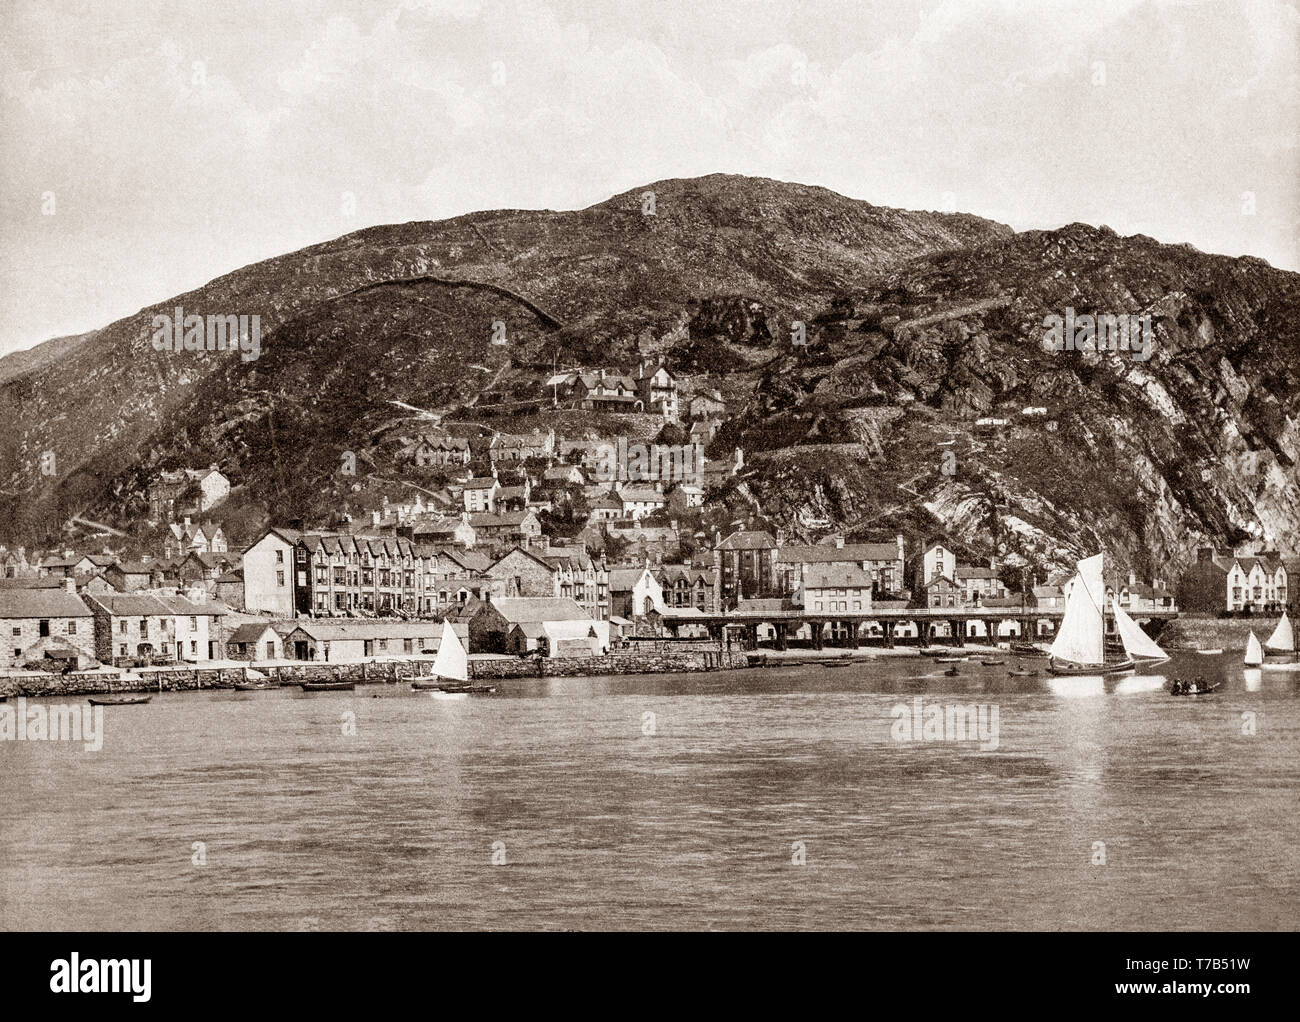 A late 19th Century view of Barmouth, a town in the county of Gwynedd, north-western Wales, lying on the estuary of the River Mawddach and Cardigan Bay. The town grew around the shipbuilding industry, and more recently as a seaside resort. William Wordsworth, a visitor to Barmouth in the 19th century, described it thus: 'With a fine sea view in front, the mountains behind, the glorious estuary running eight miles inland, and Cadair Idris within compass of a day's walk, Barmouth can always hold its own against any rival.' - Stock Image